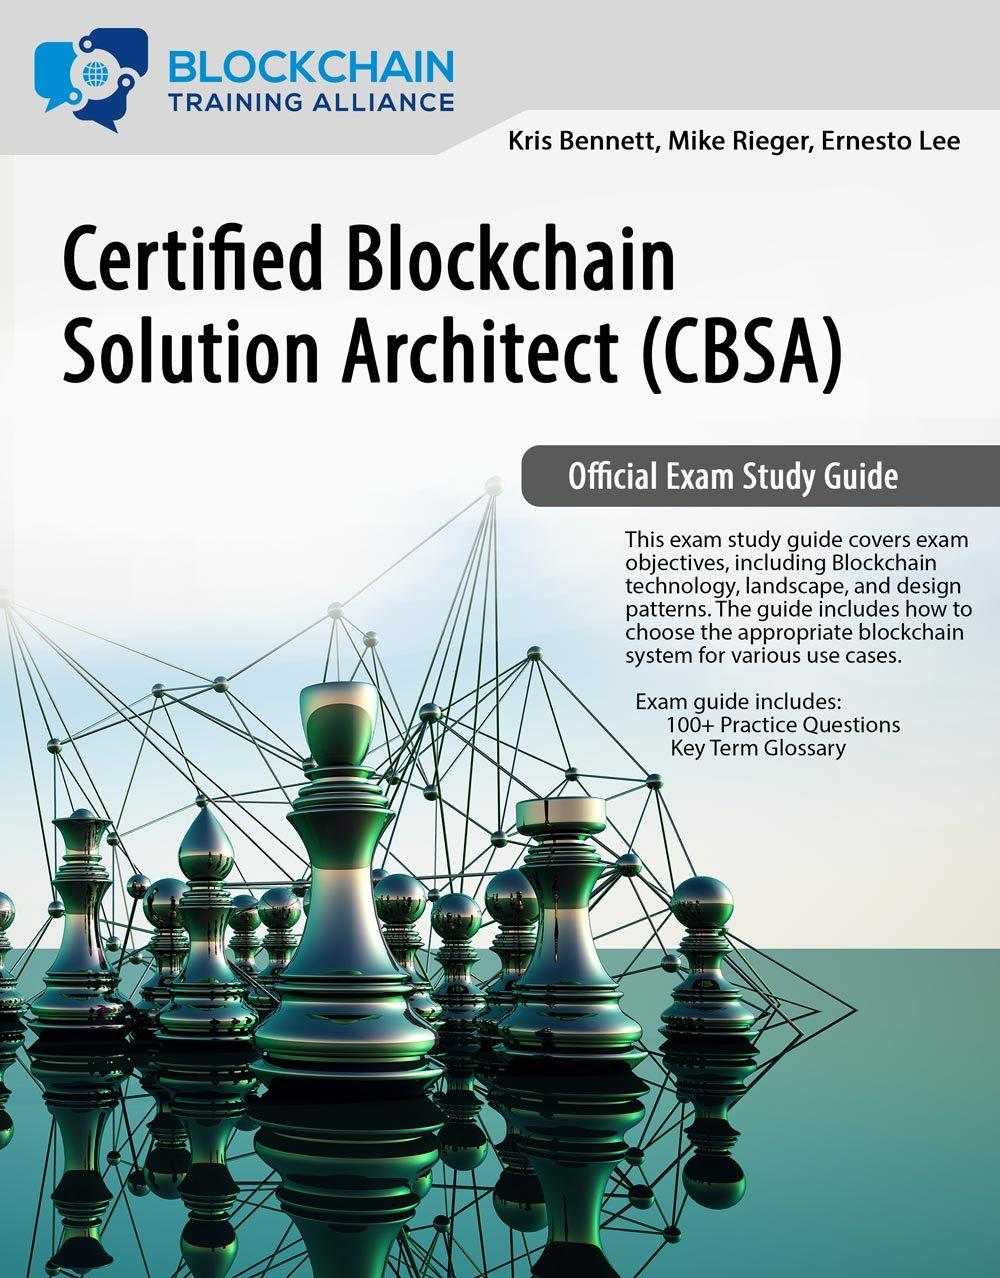 CBSA Official Exam Study Guide